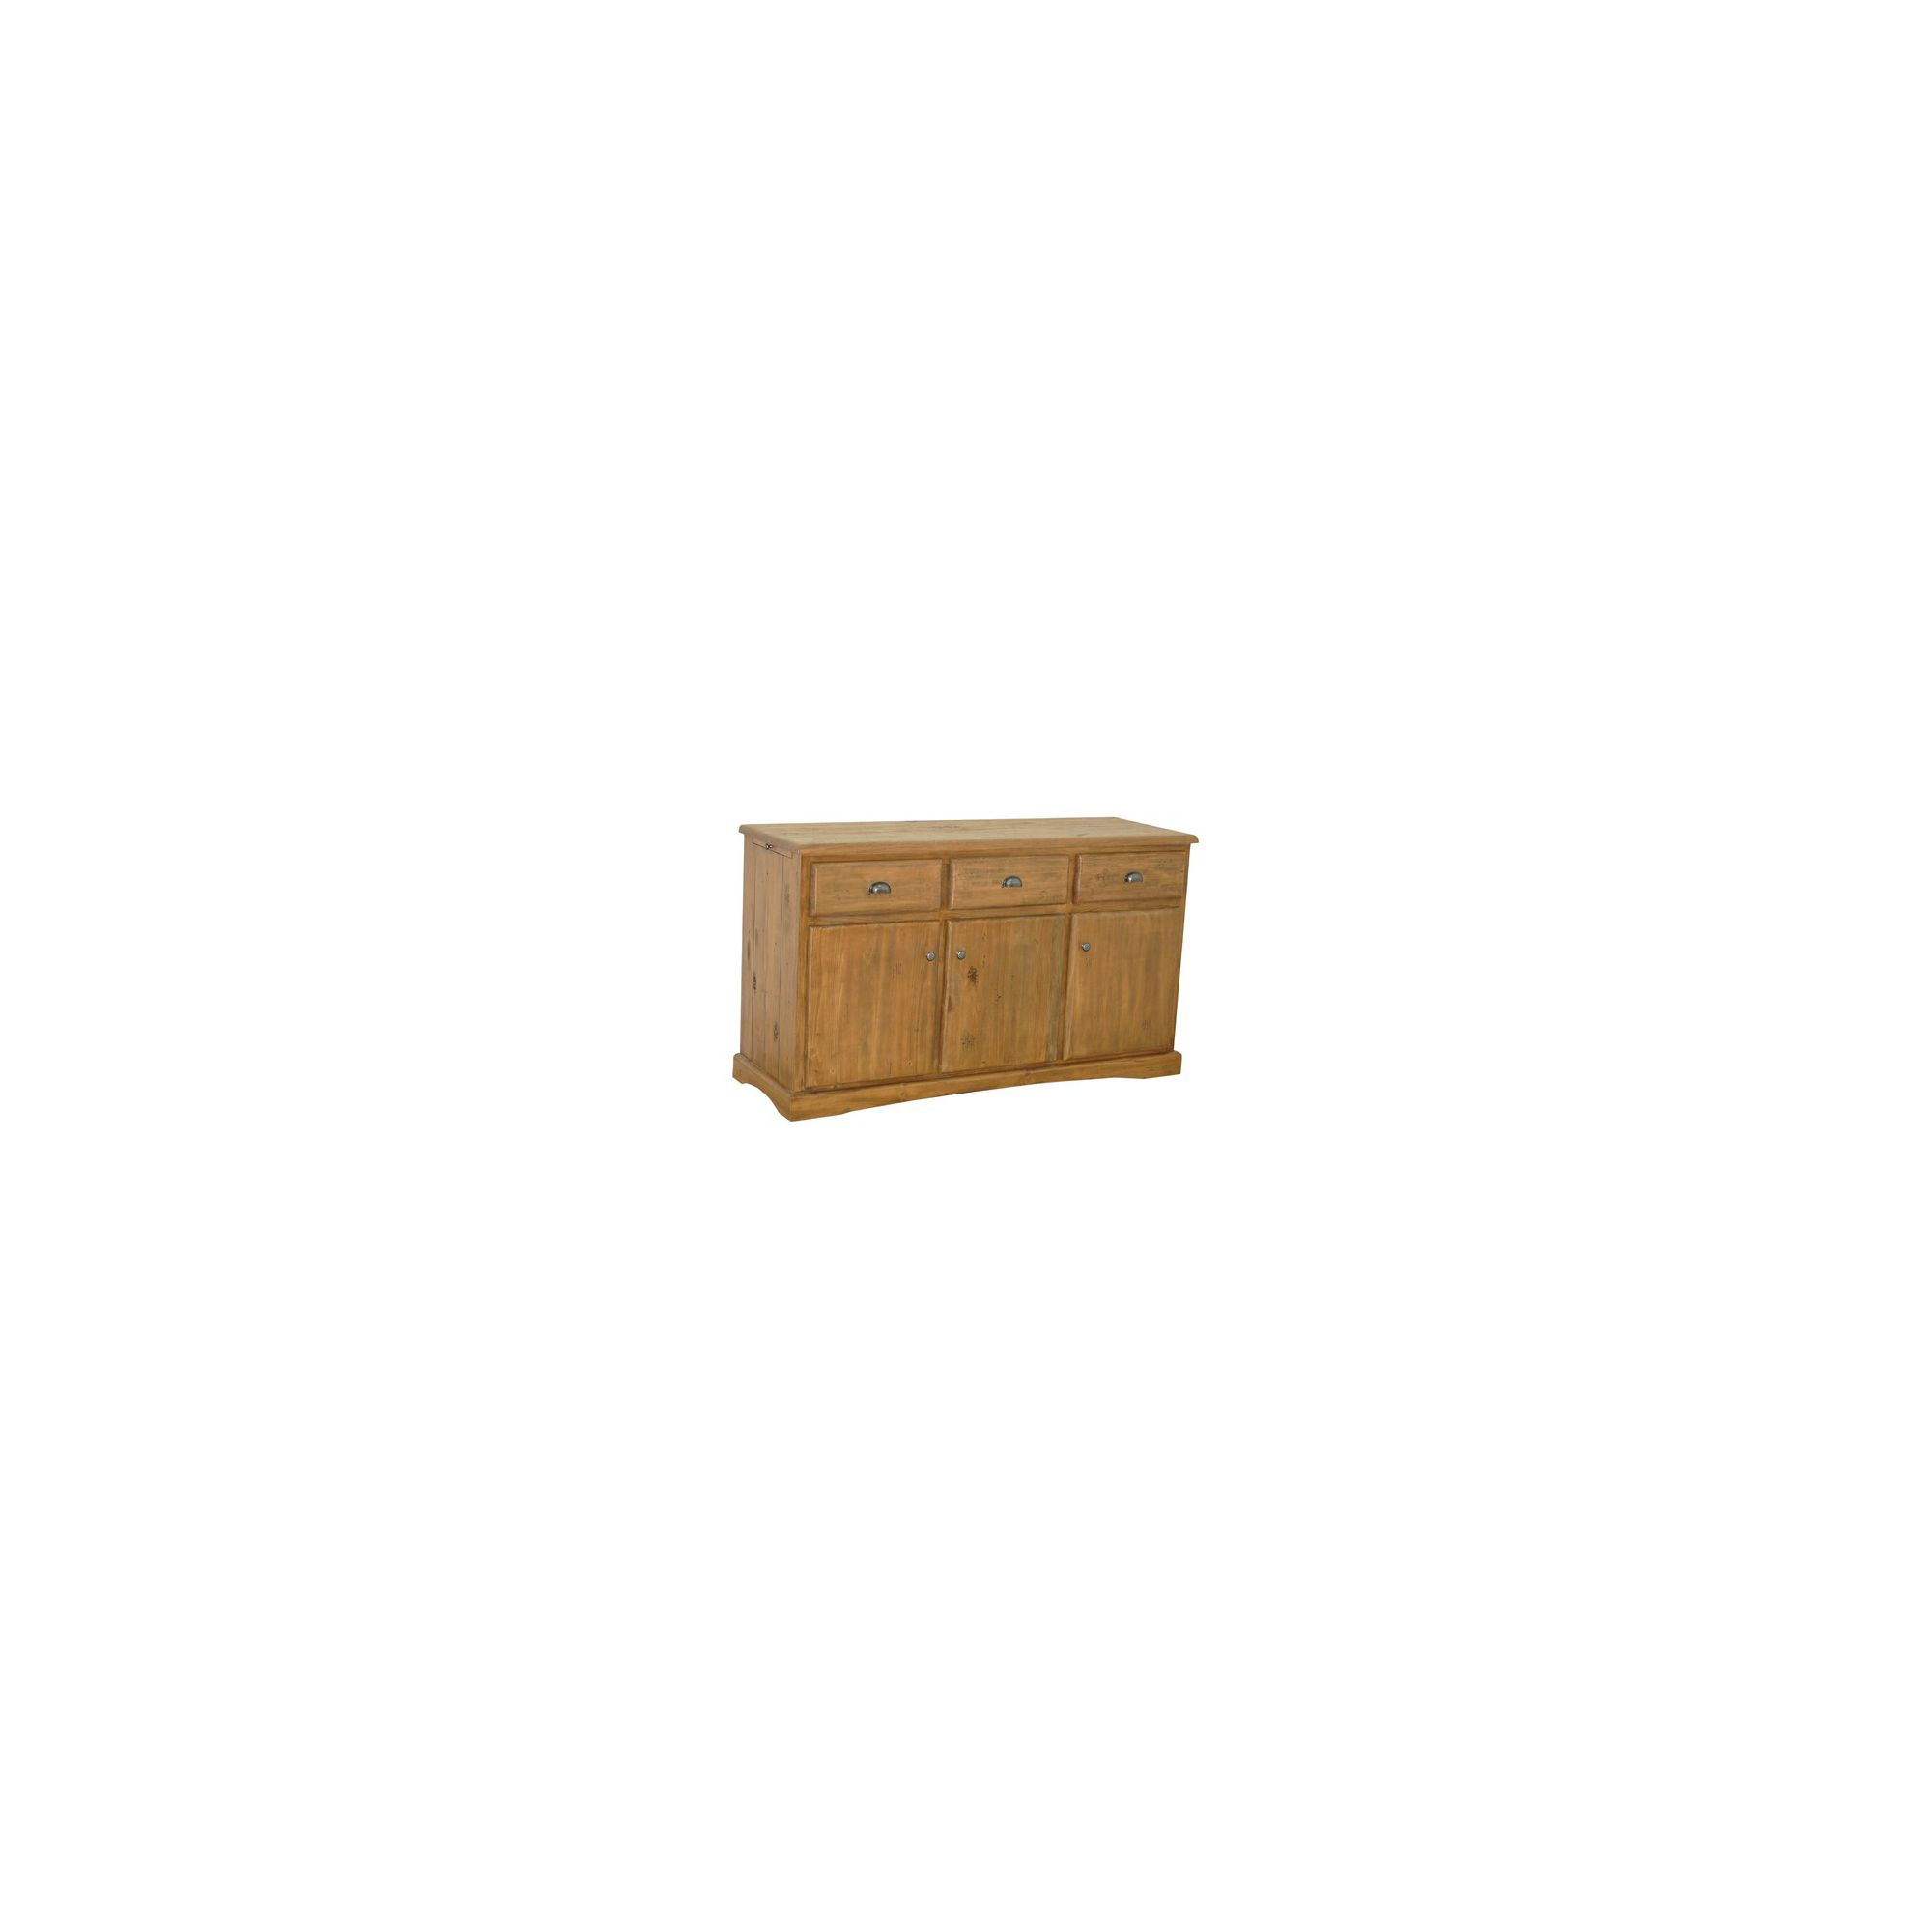 Wilkinson Furniture Brentford Three Drawer Sideboard - Small at Tescos Direct